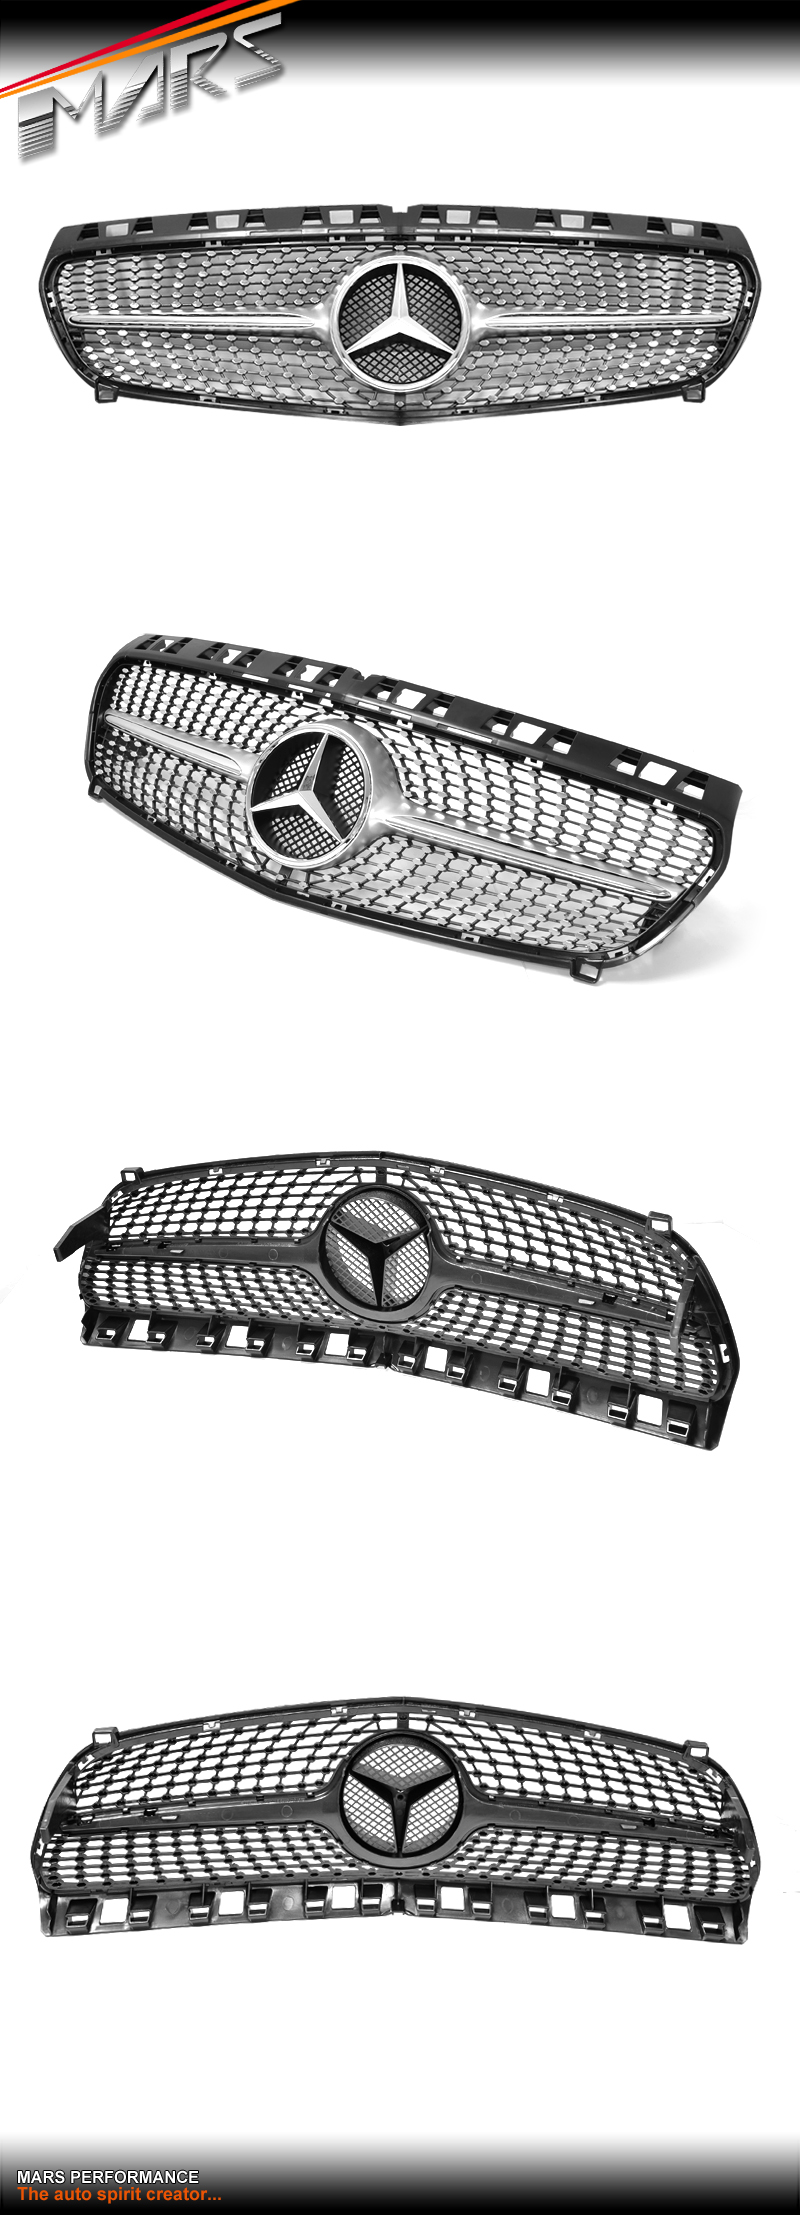 Chrome silver diamond star a250 style radiator grille for for Silver star mercedes benz parts